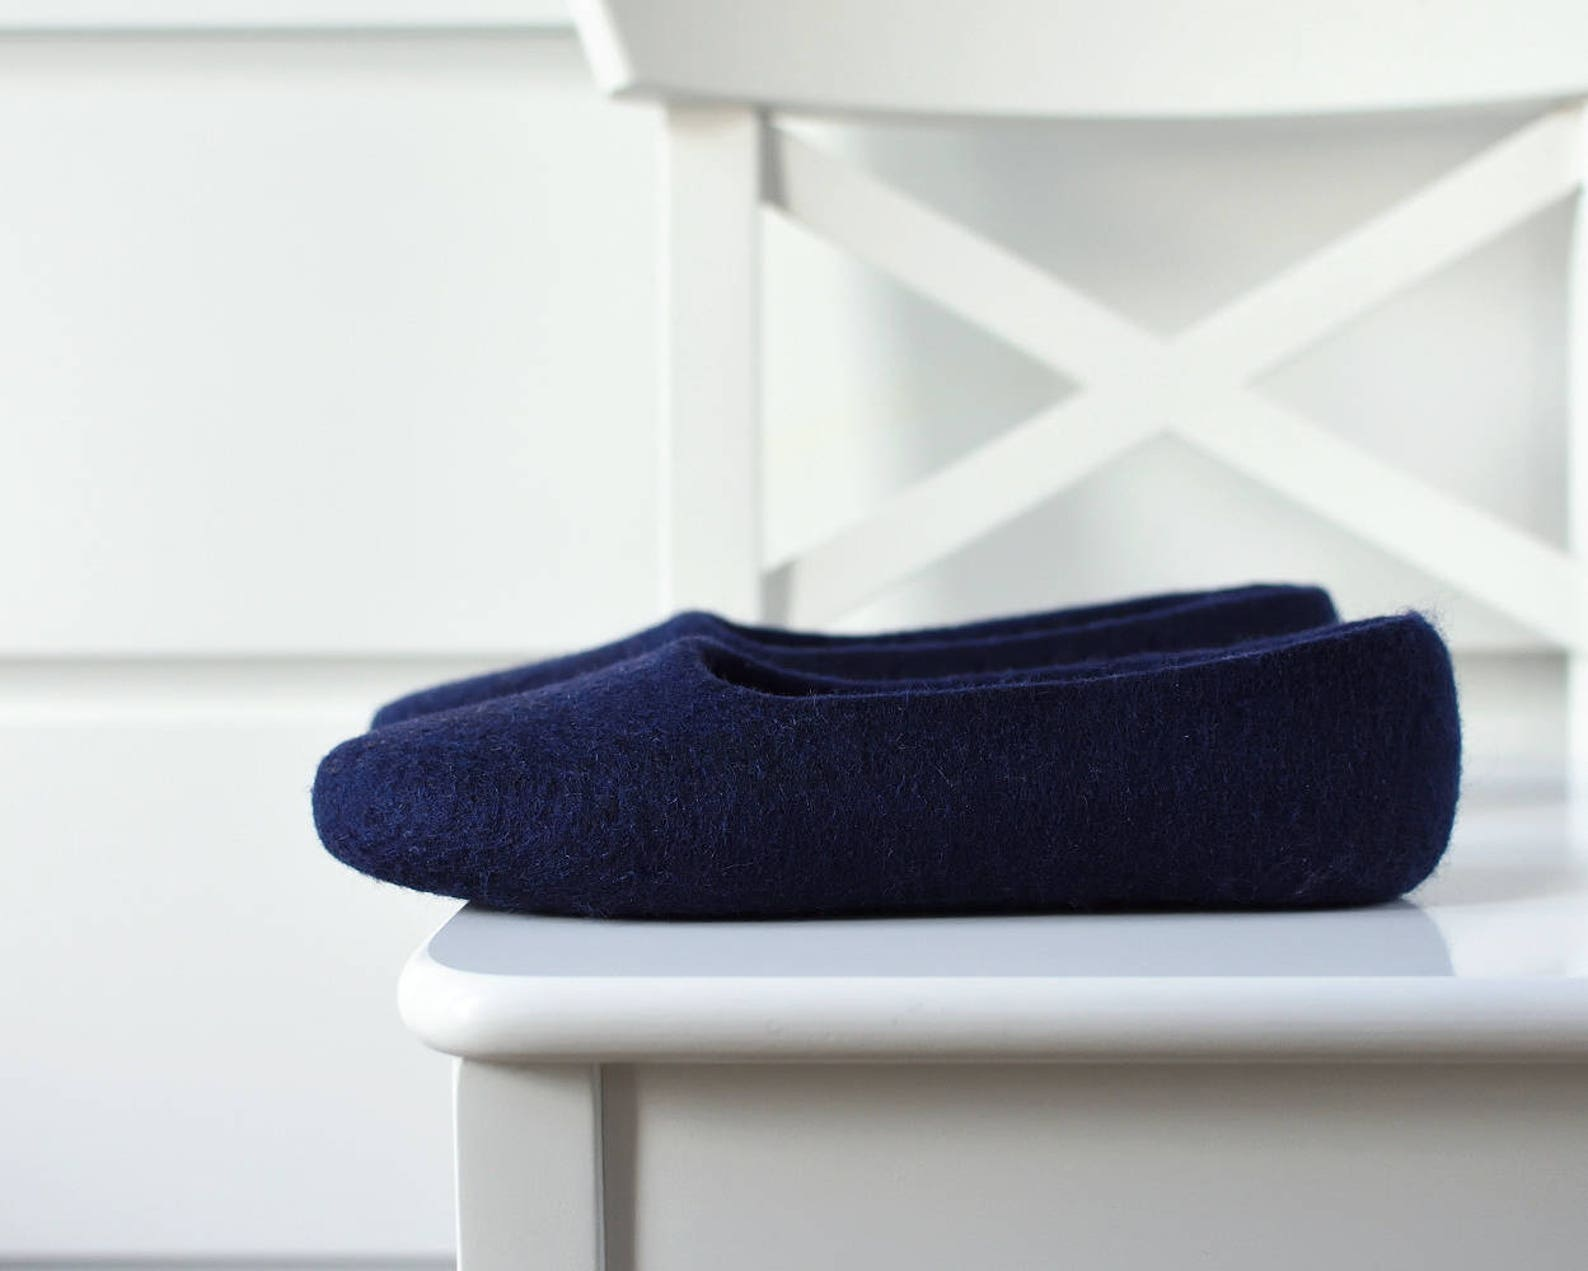 navy felt slippers for women - hand dyed wool slippers - felted ballet flats - indoor footwear women - minimalist mother's d